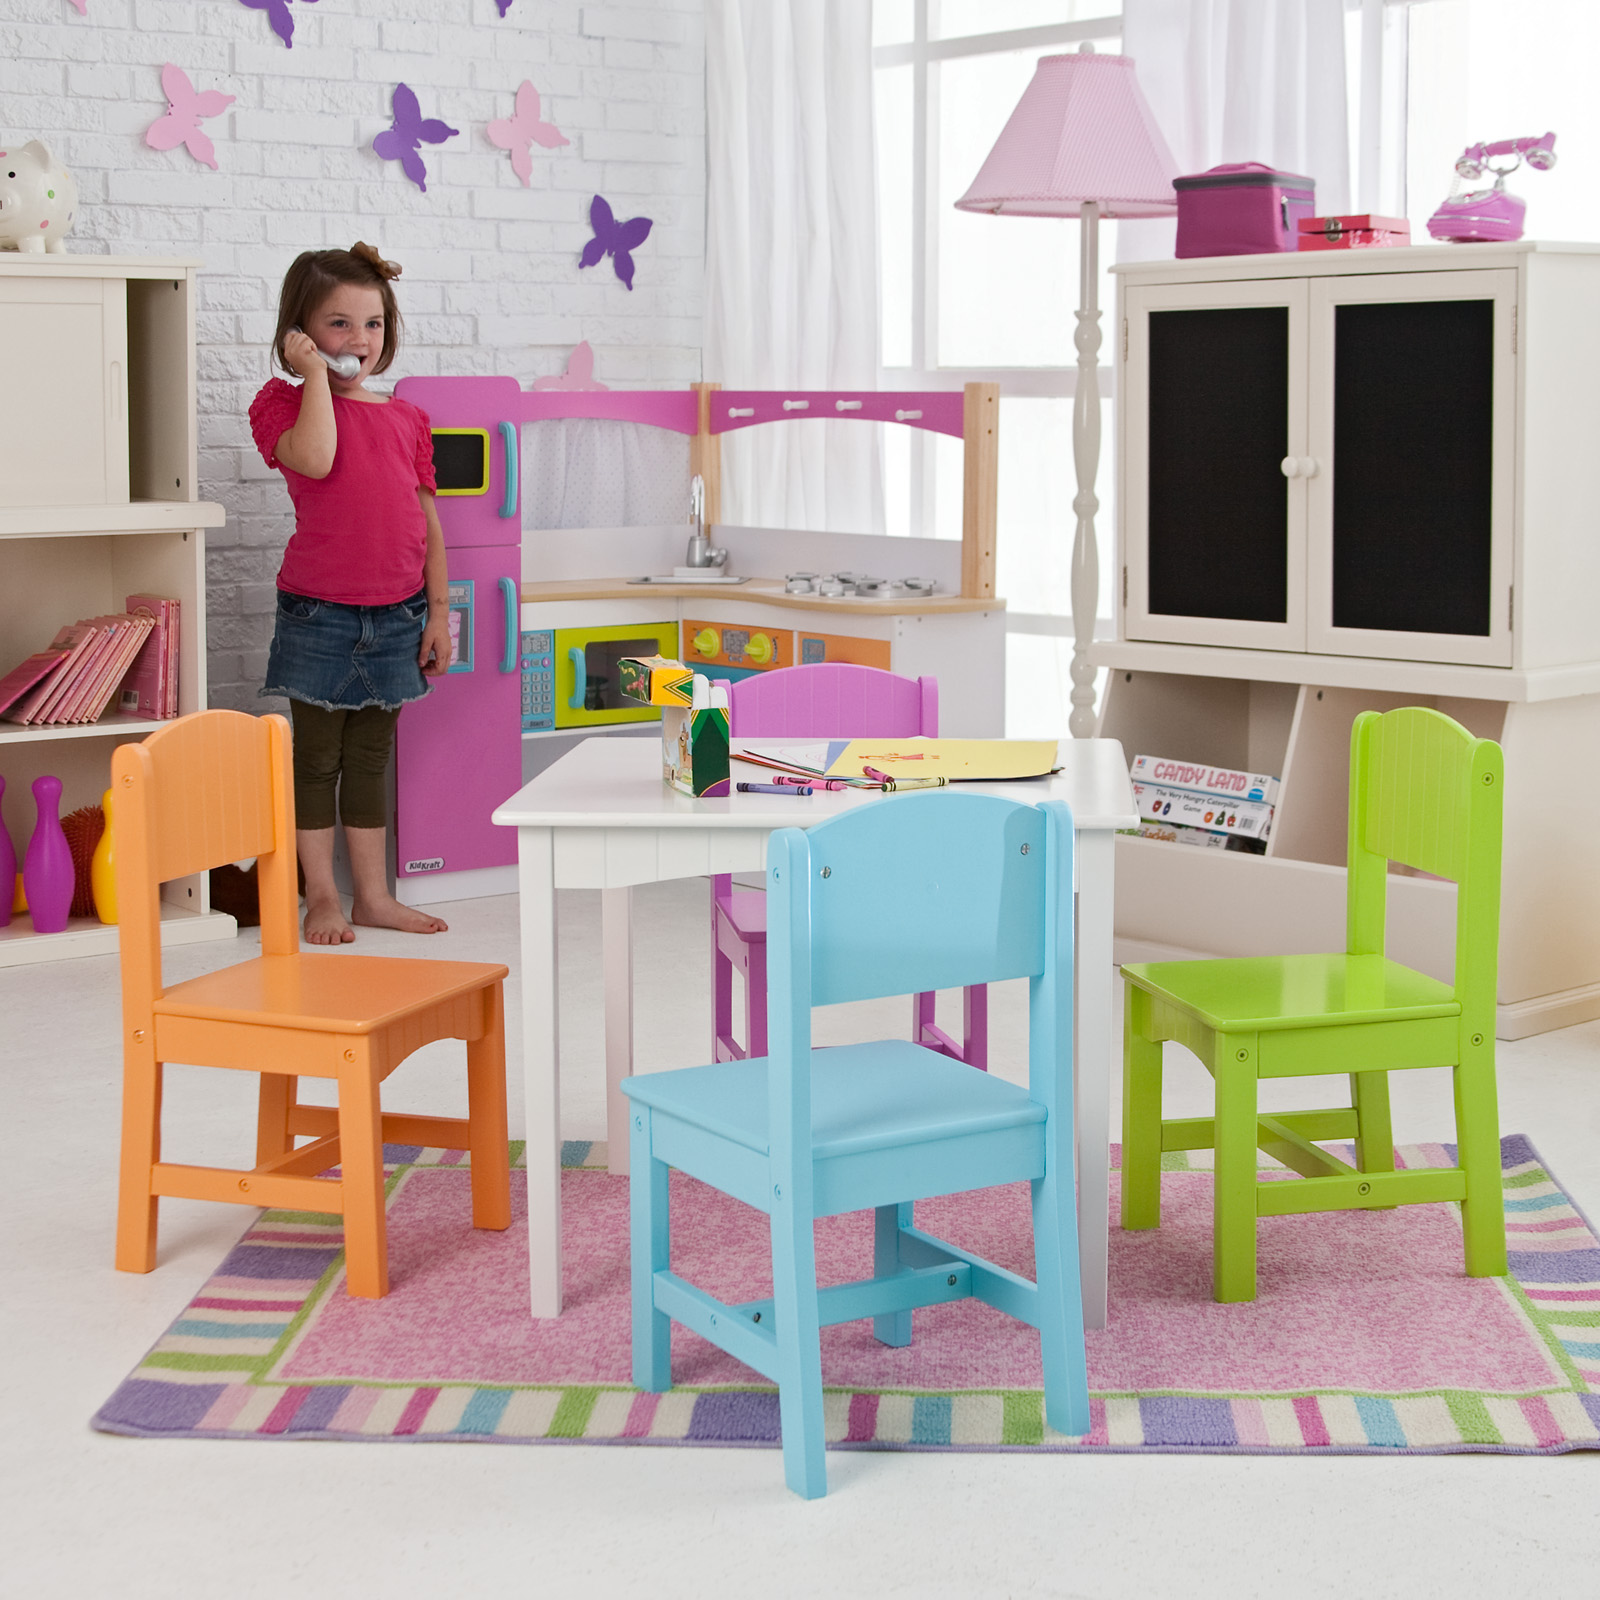 KidKraft Nantucket Big N Bright Table and Chair Set - 26124 | Hayneedle